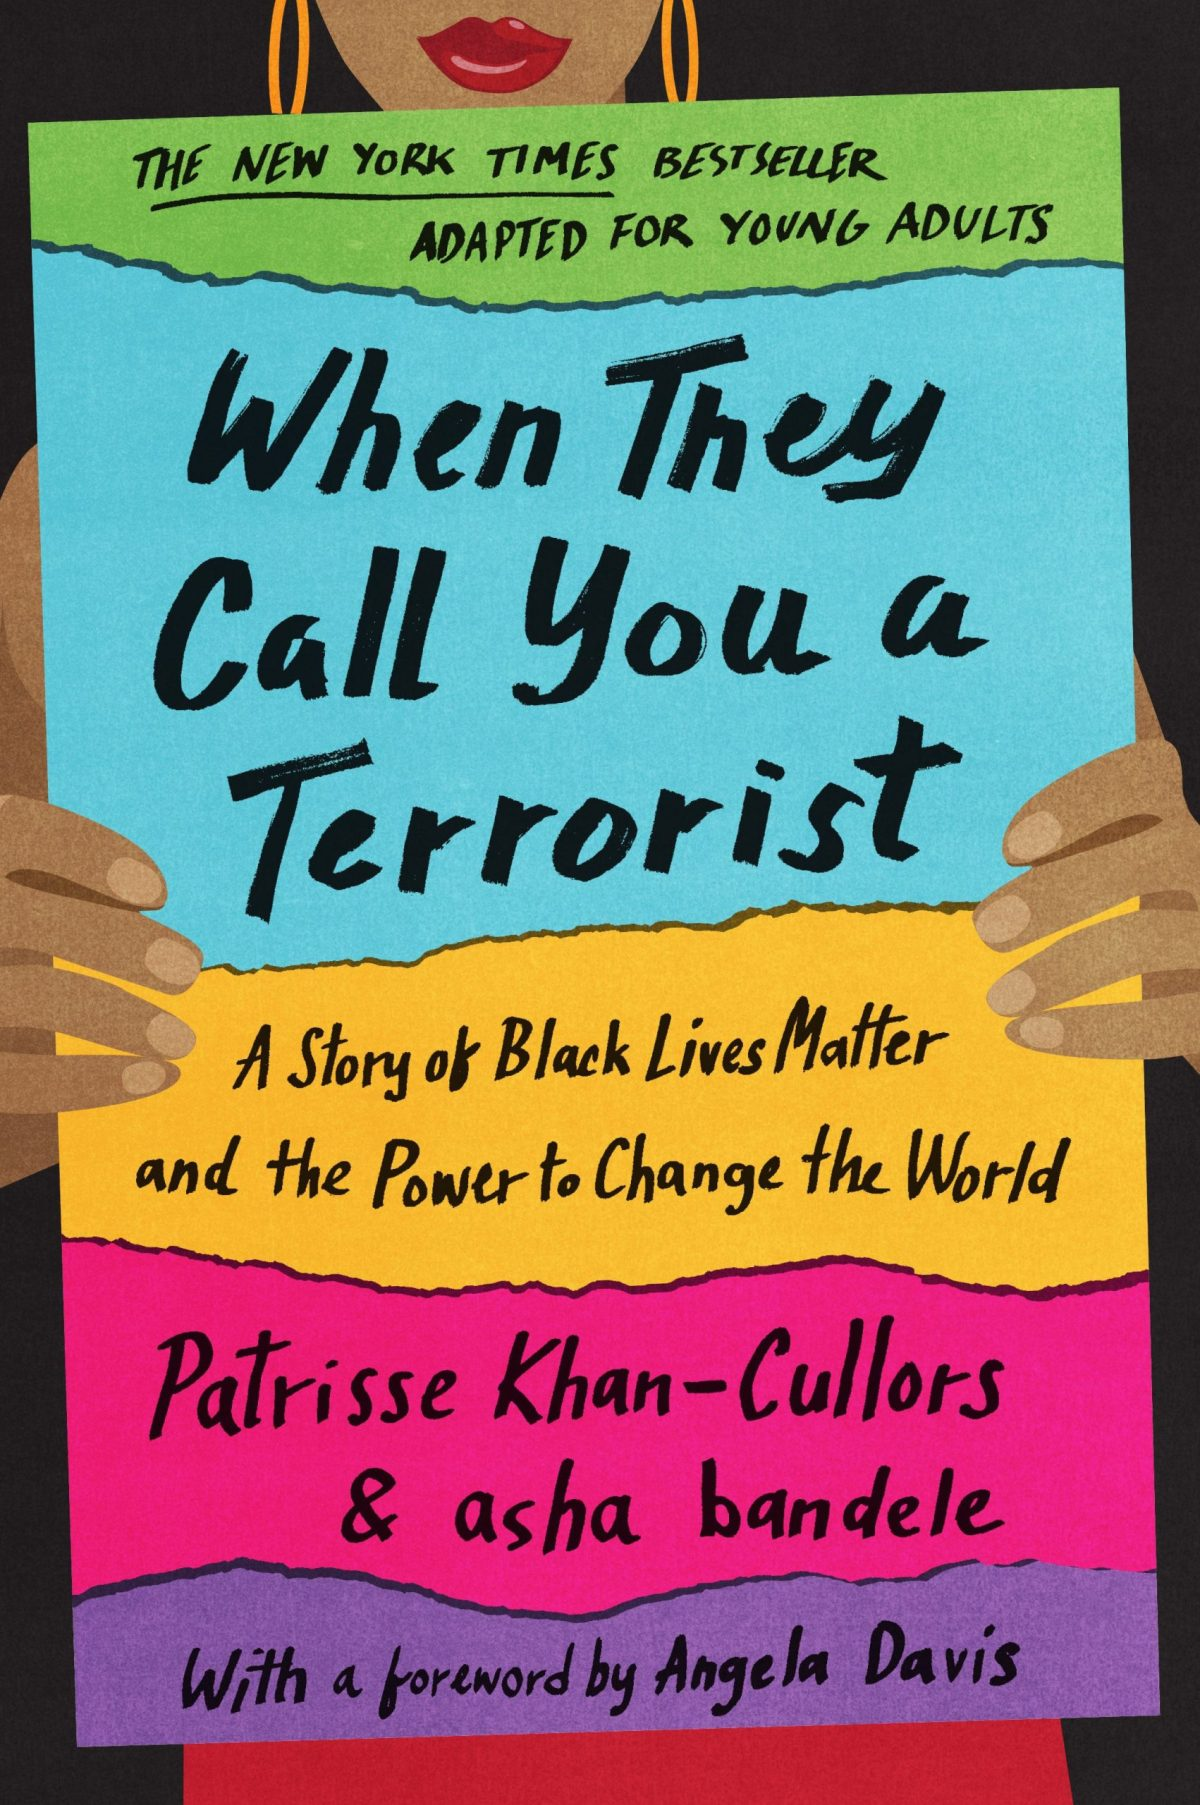 Cover of Patrisse Khan-Cullors' When They Call You a Terrorist